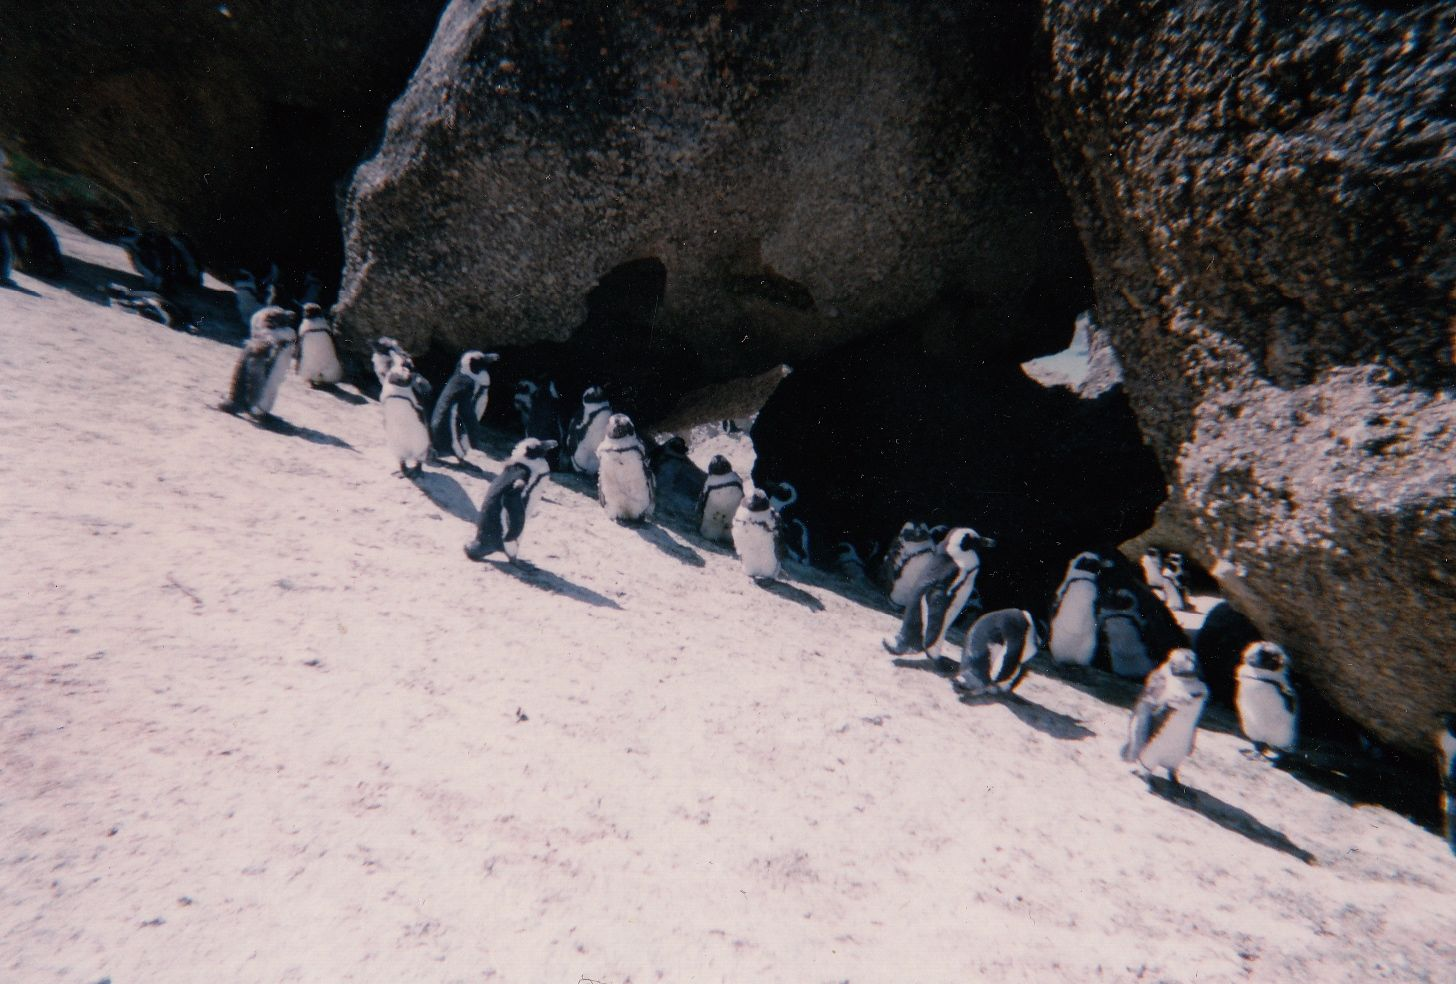 Penguins in Africa